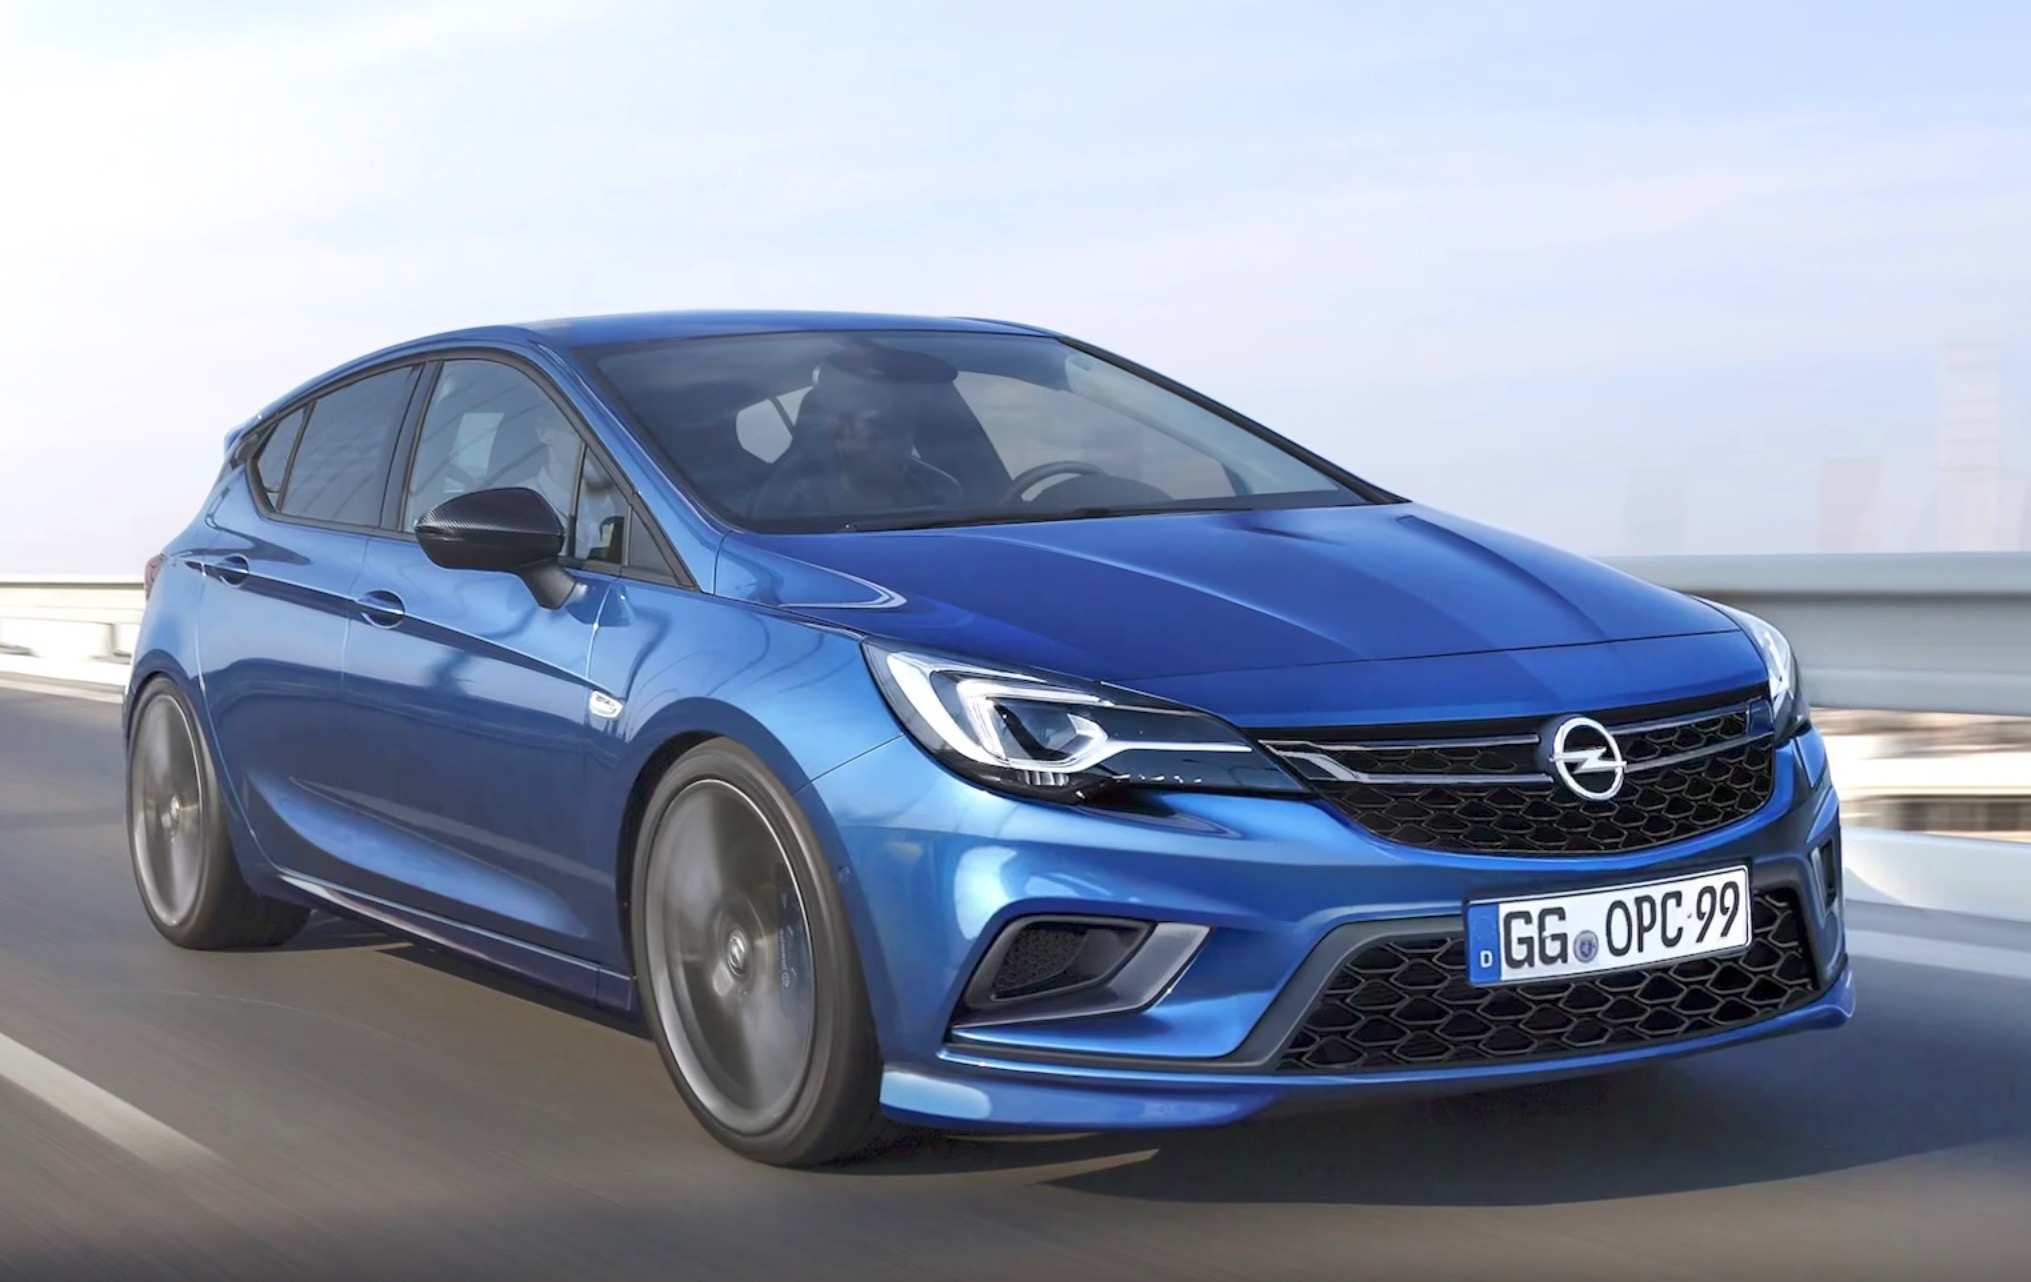 97 The Best Opel Opc 2019 Exterior